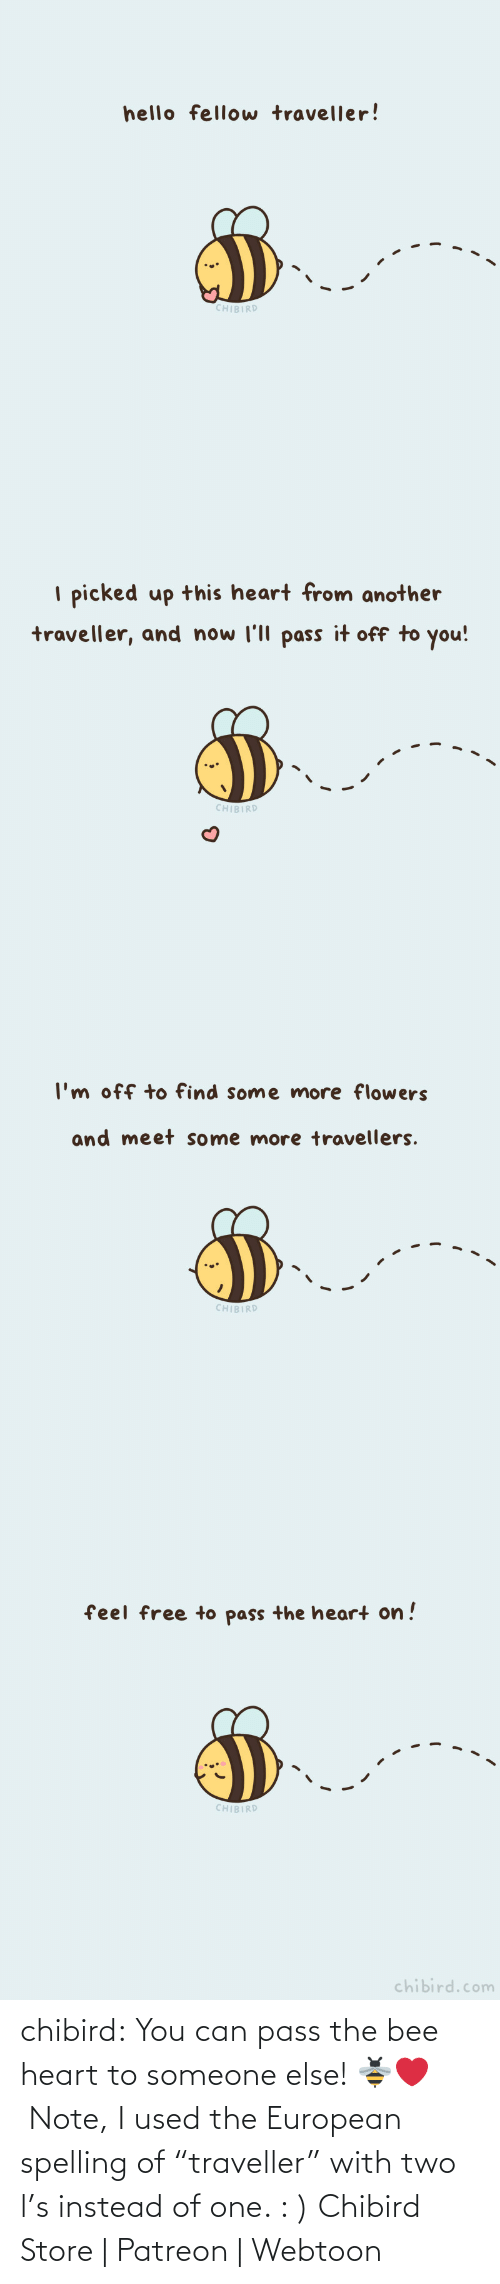 "bee: chibird:  You can pass the bee heart to someone else! 🐝❤️️ Note, I used the European spelling of ""traveller"" with two l's instead of one. : )  Chibird Store 